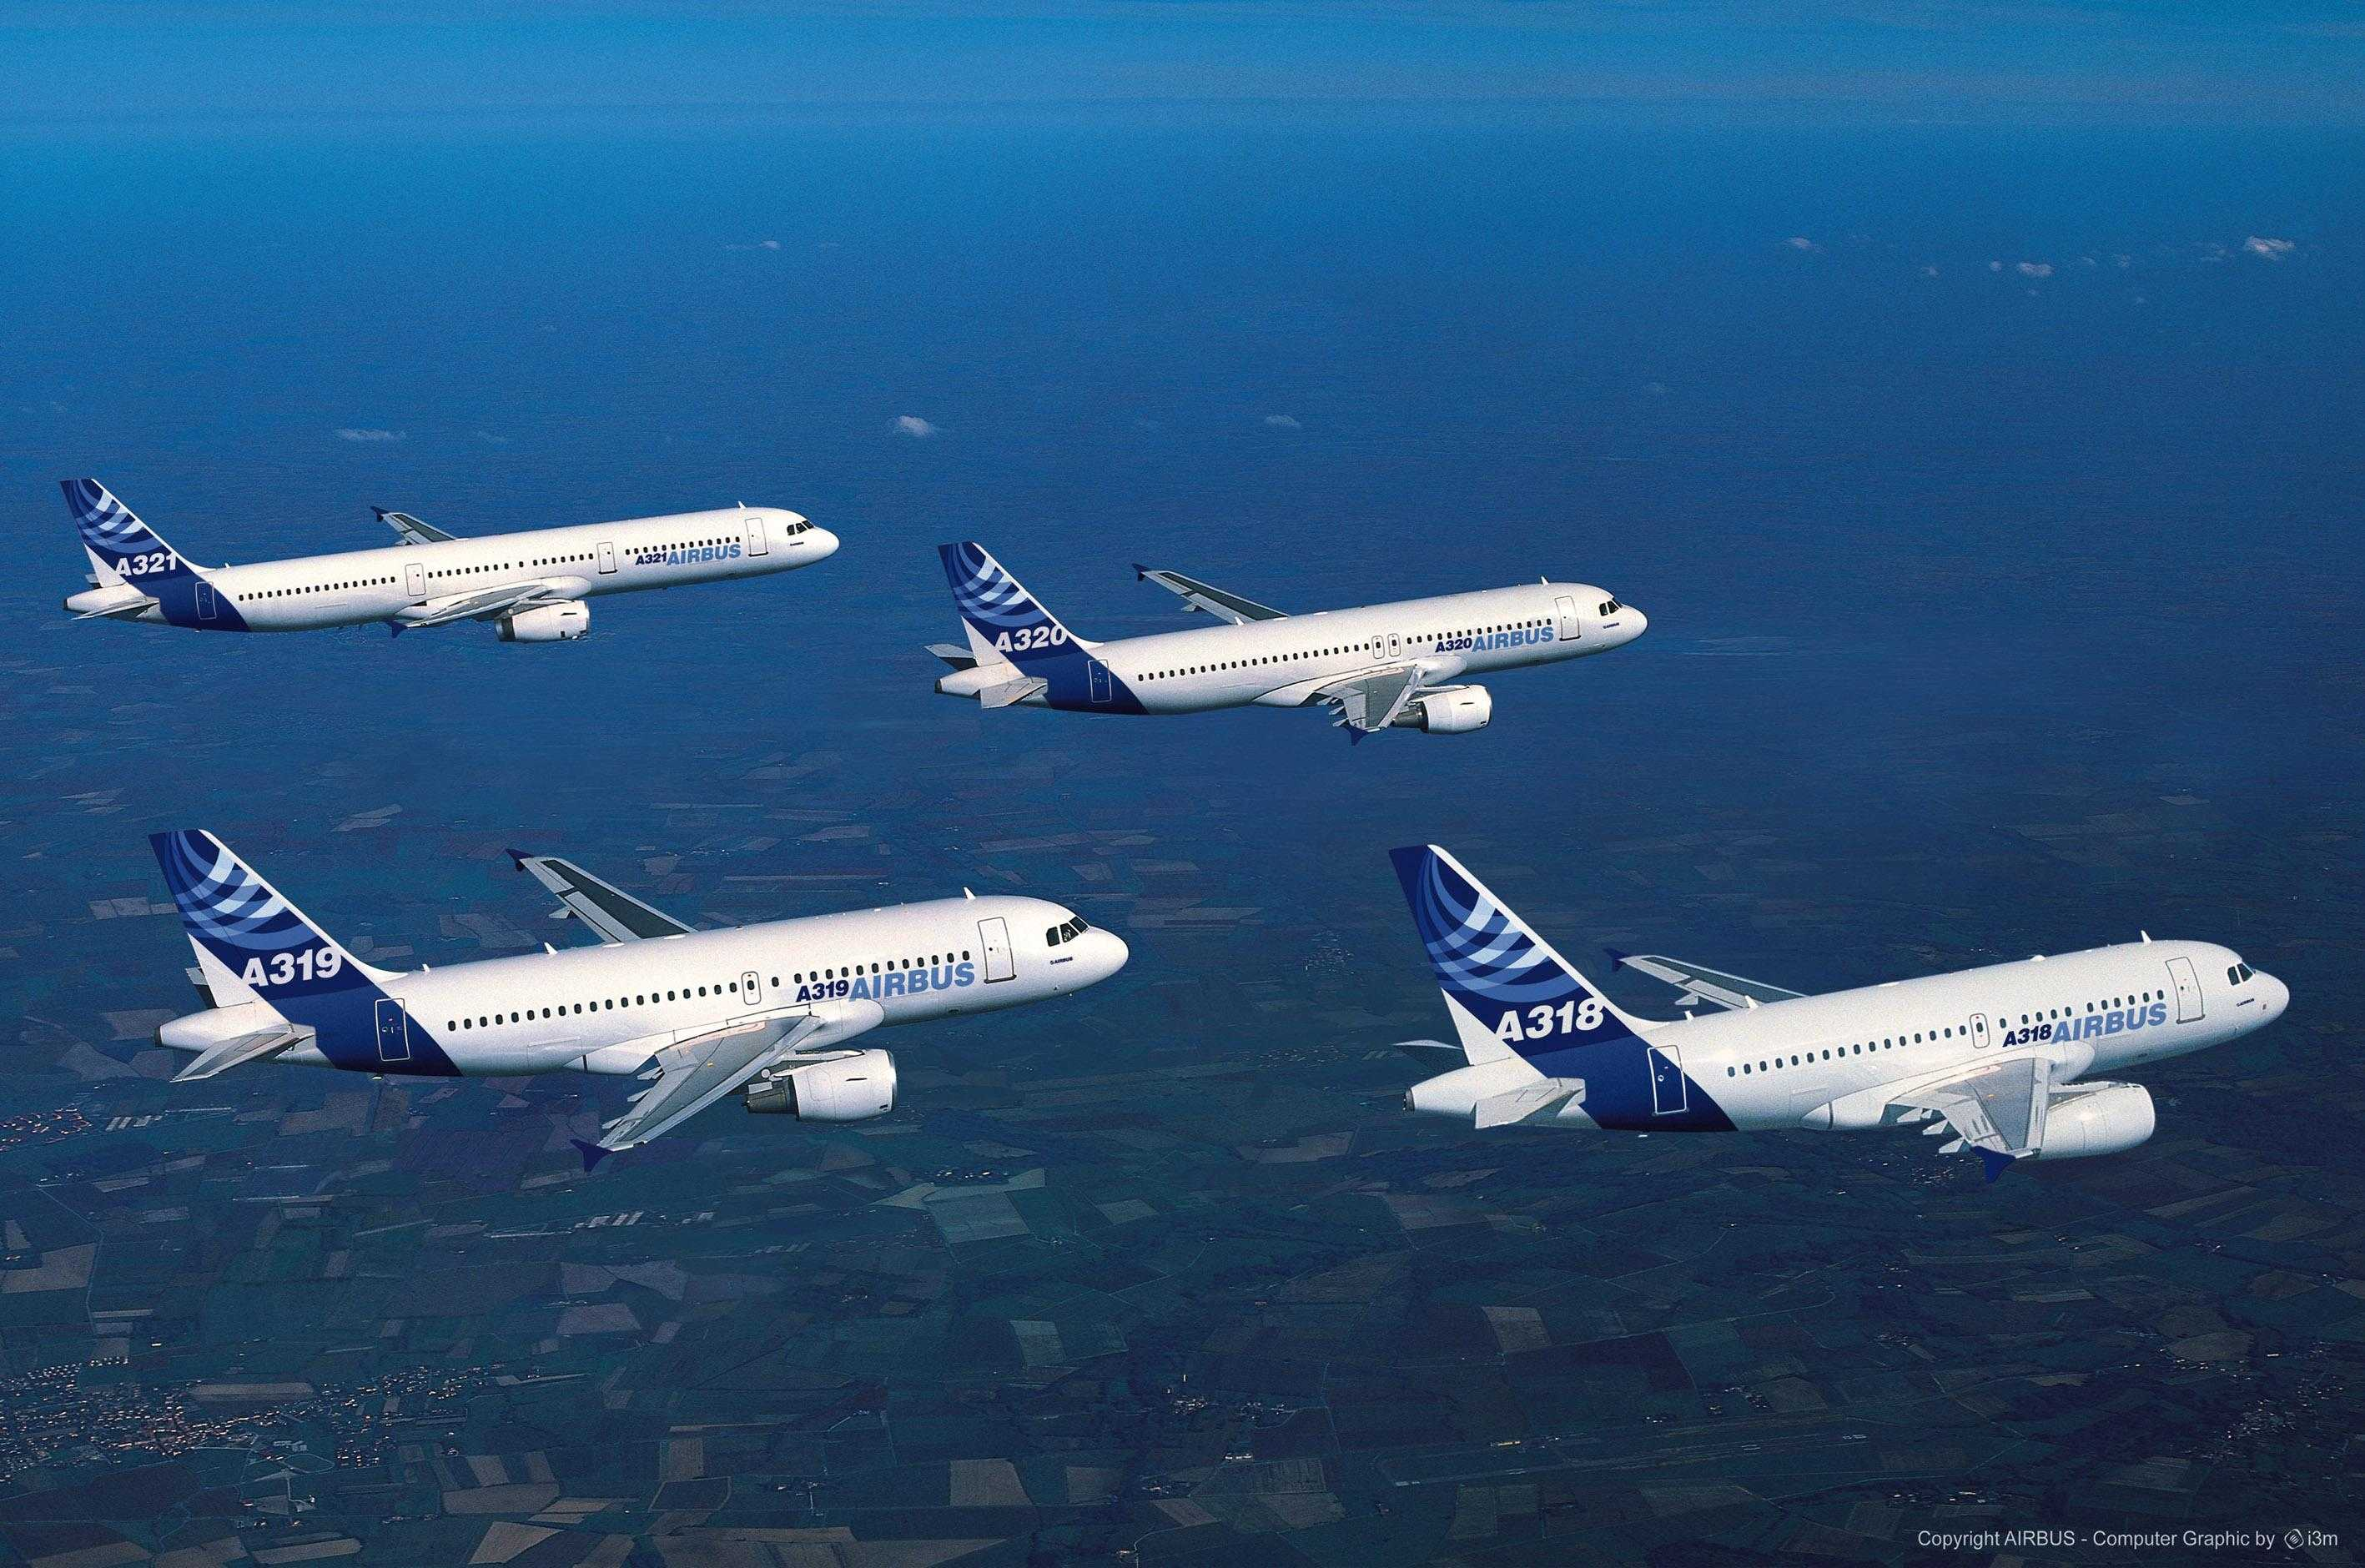 A320 Airbus Family Flight